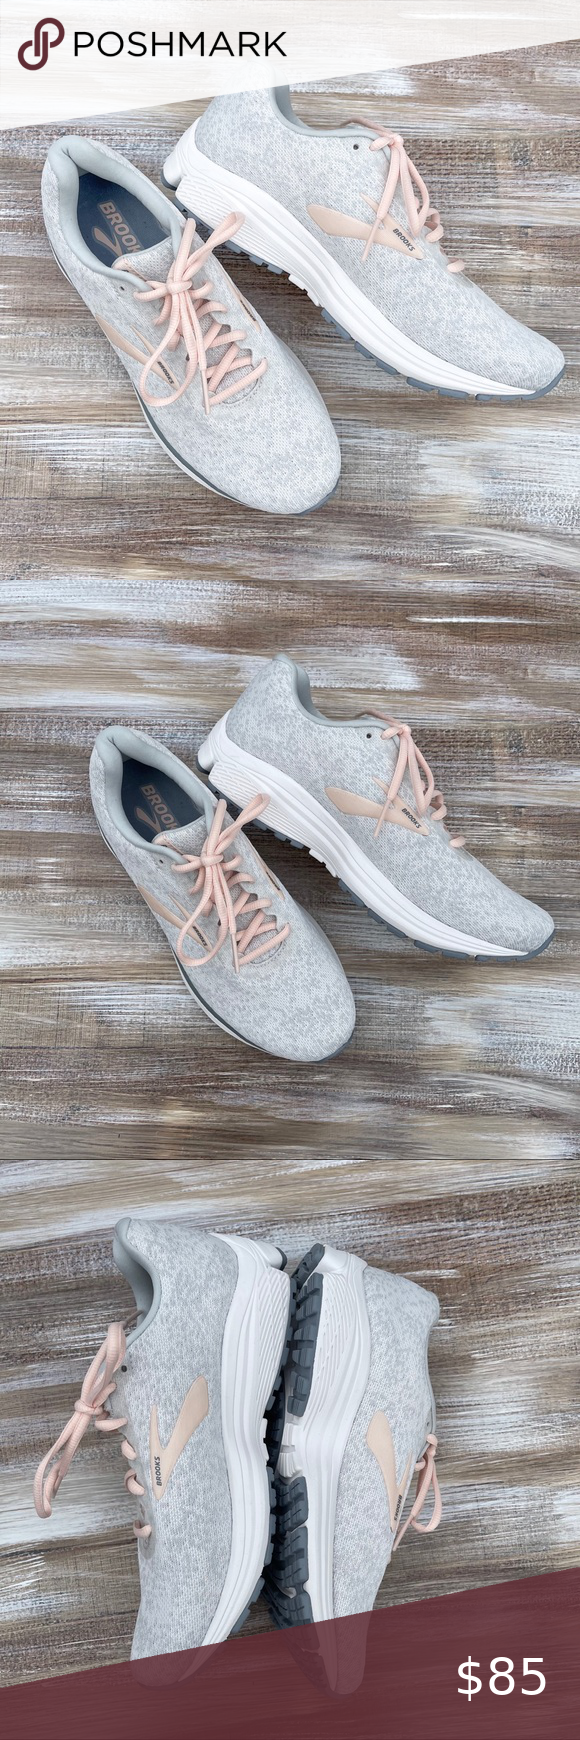 Anthem Silver Sneakers : anthem, silver, sneakers, BROOKS, Anthem, Running, Sneakers, Women,, Shoes,, Leather, Leggings